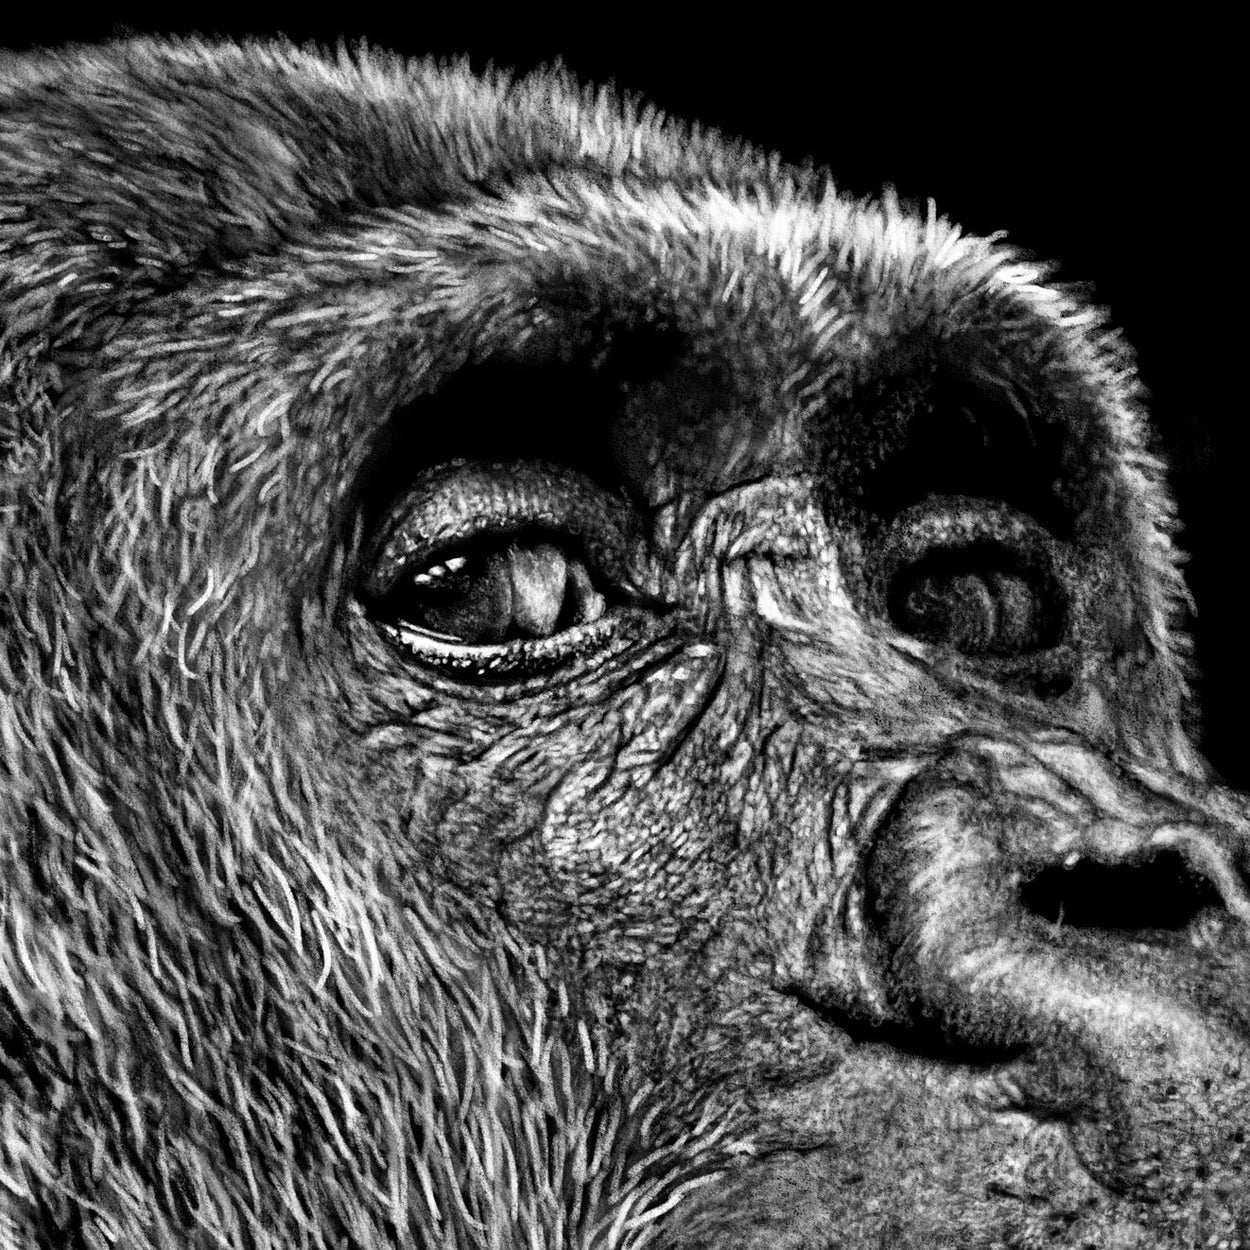 Gorilla Eyes Drawing Close-up - The Thriving Wild